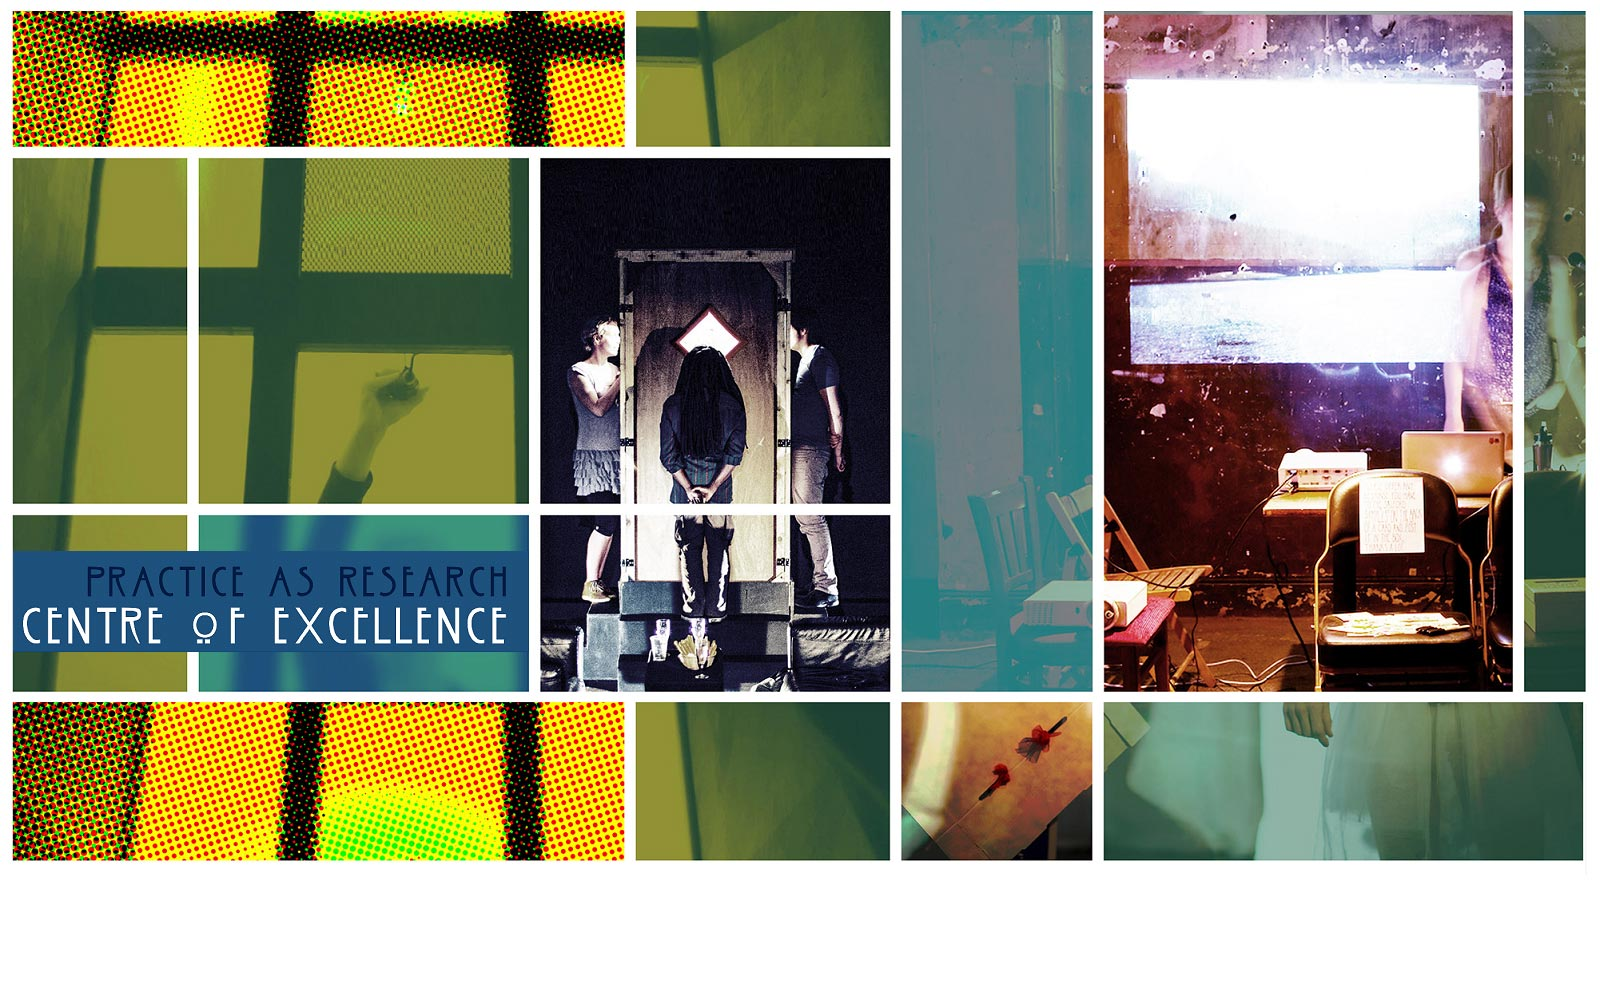 Practice-as-Research Centre of Excellence  banner